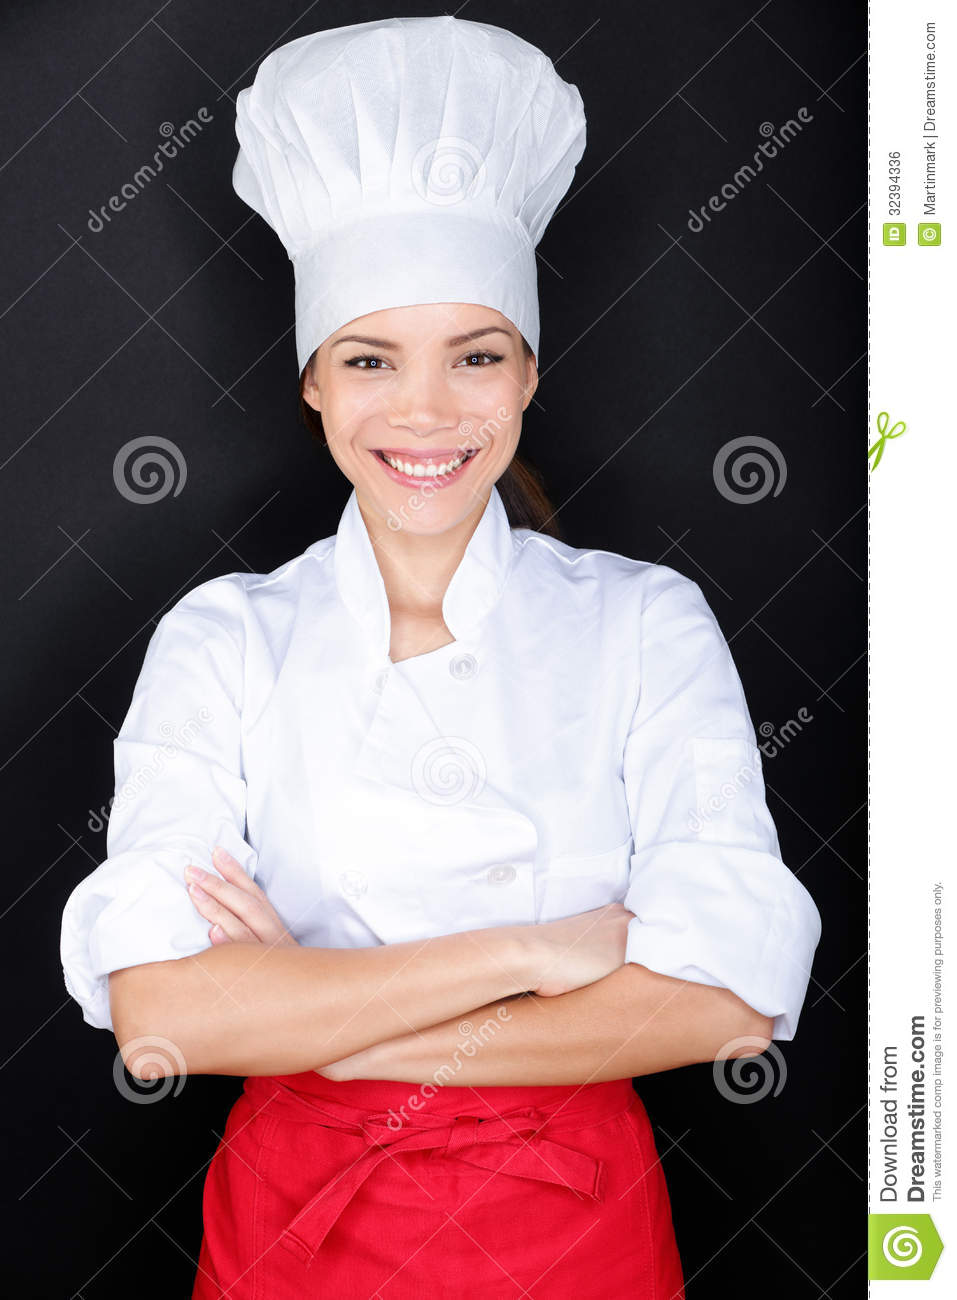 Chef whites uniform and hat royalty free stock image image 32394336